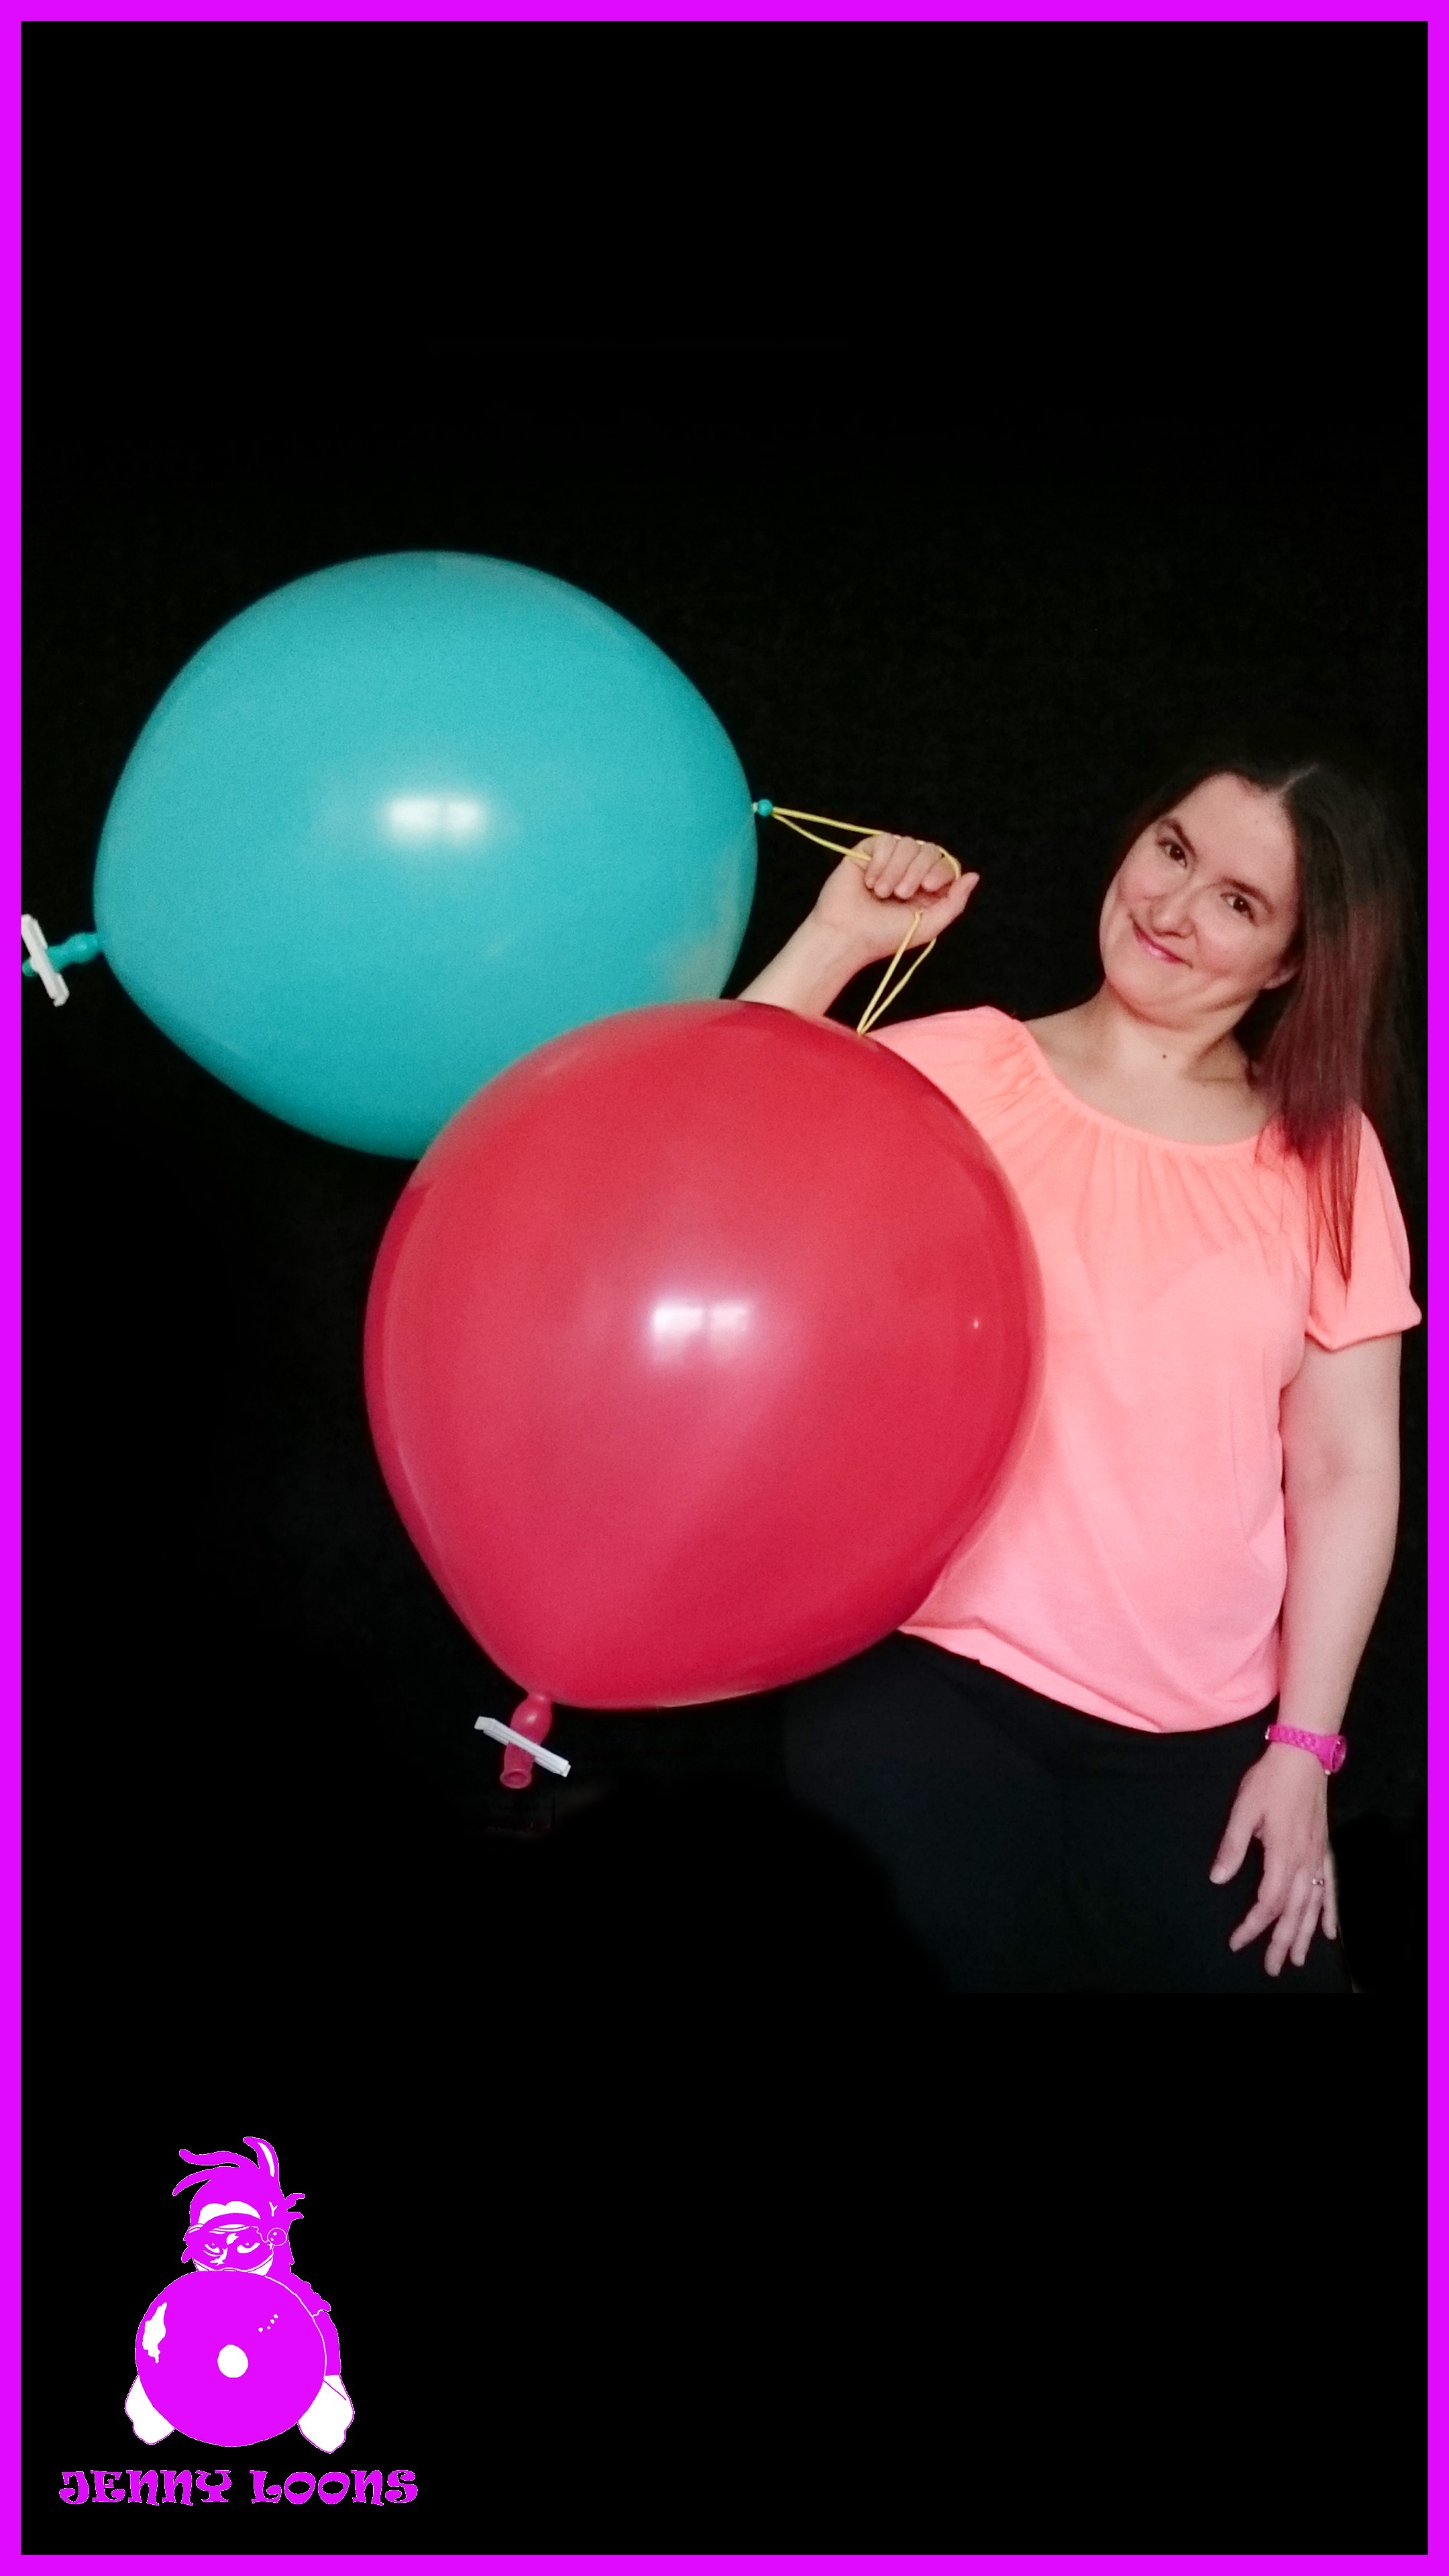 UNIQUE / GLOBOS Punchballons - Punching balloons